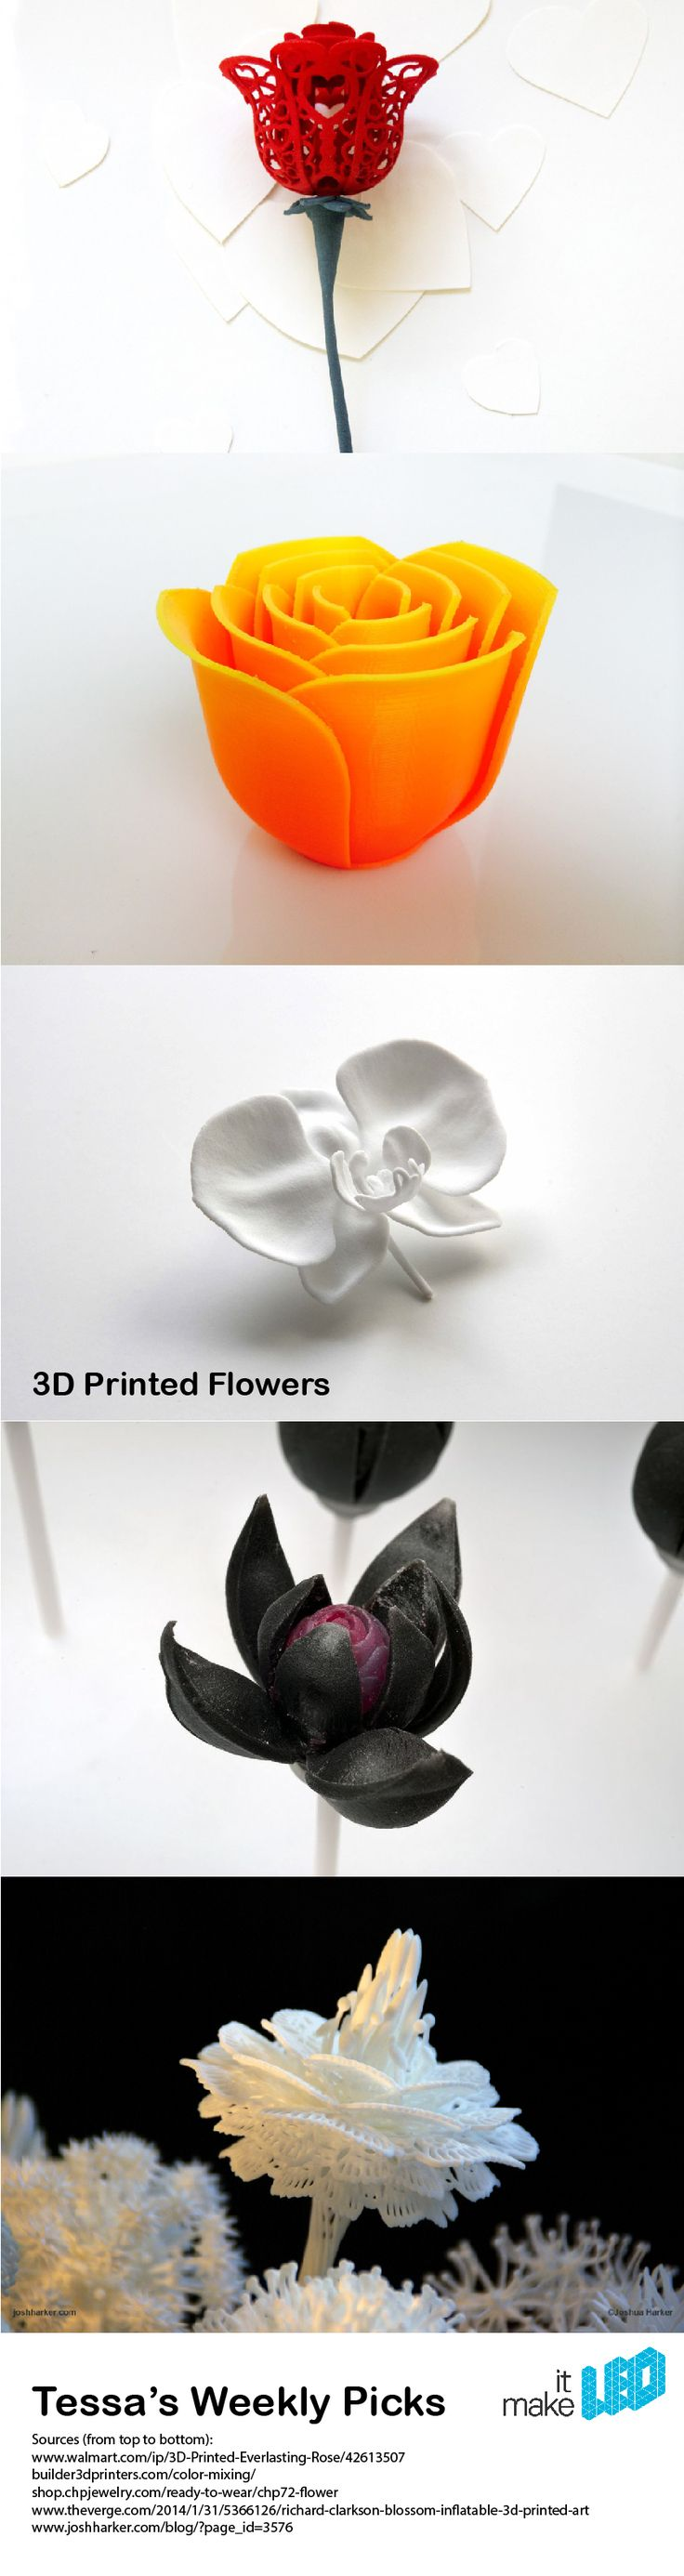 A bouquet of 5 different 3D printed flowers